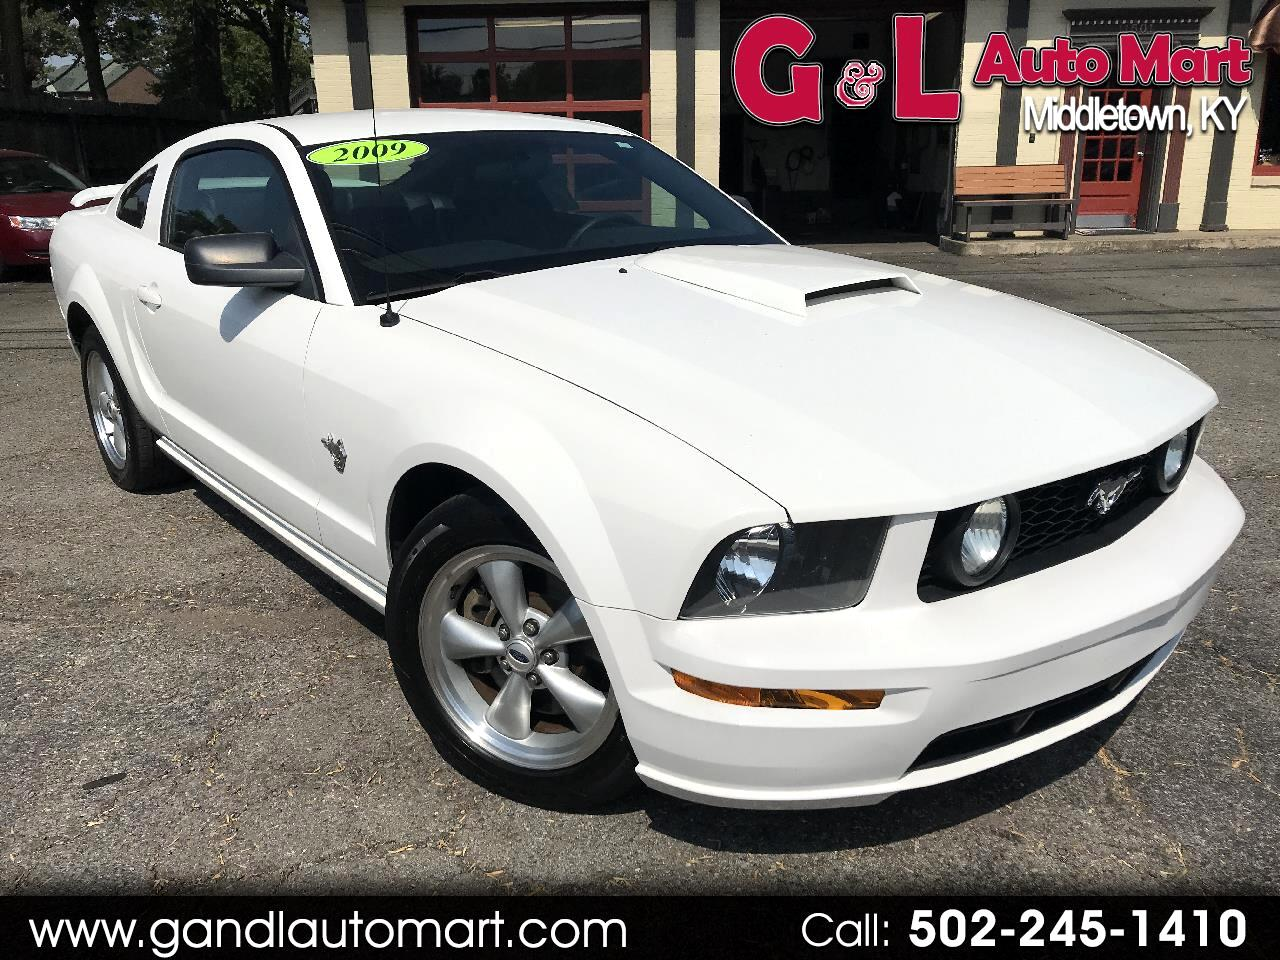 2009 Ford Mustang 2dr Cpe GT Premium